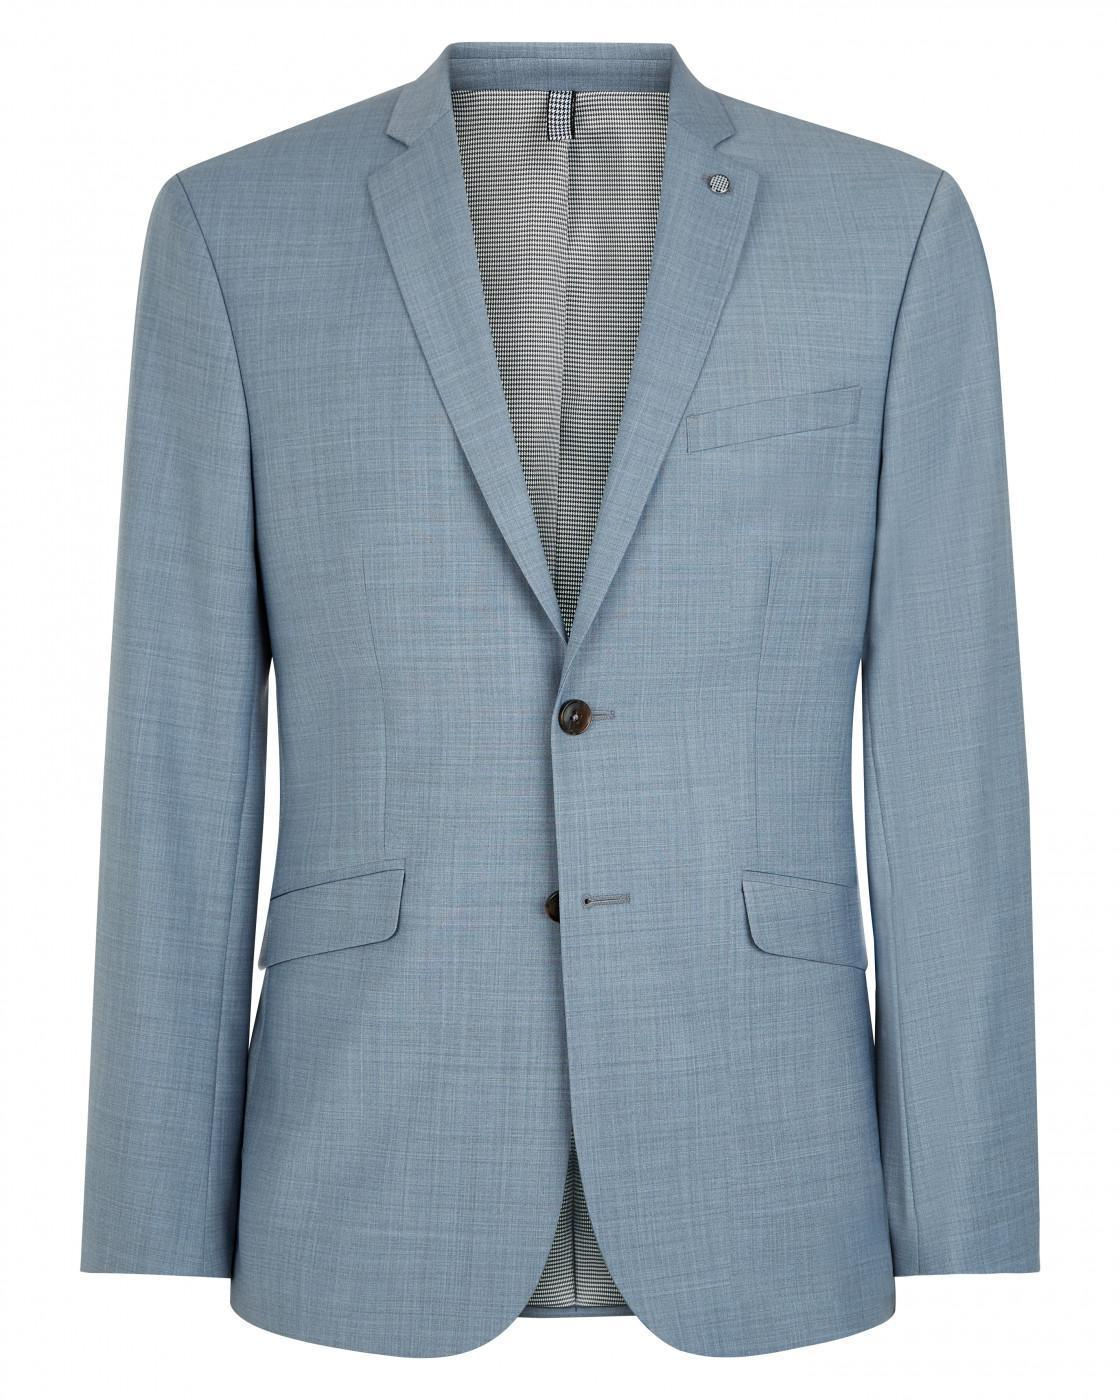 Slim Light Grey Melange Suit Jacket By Austin Reed Thread